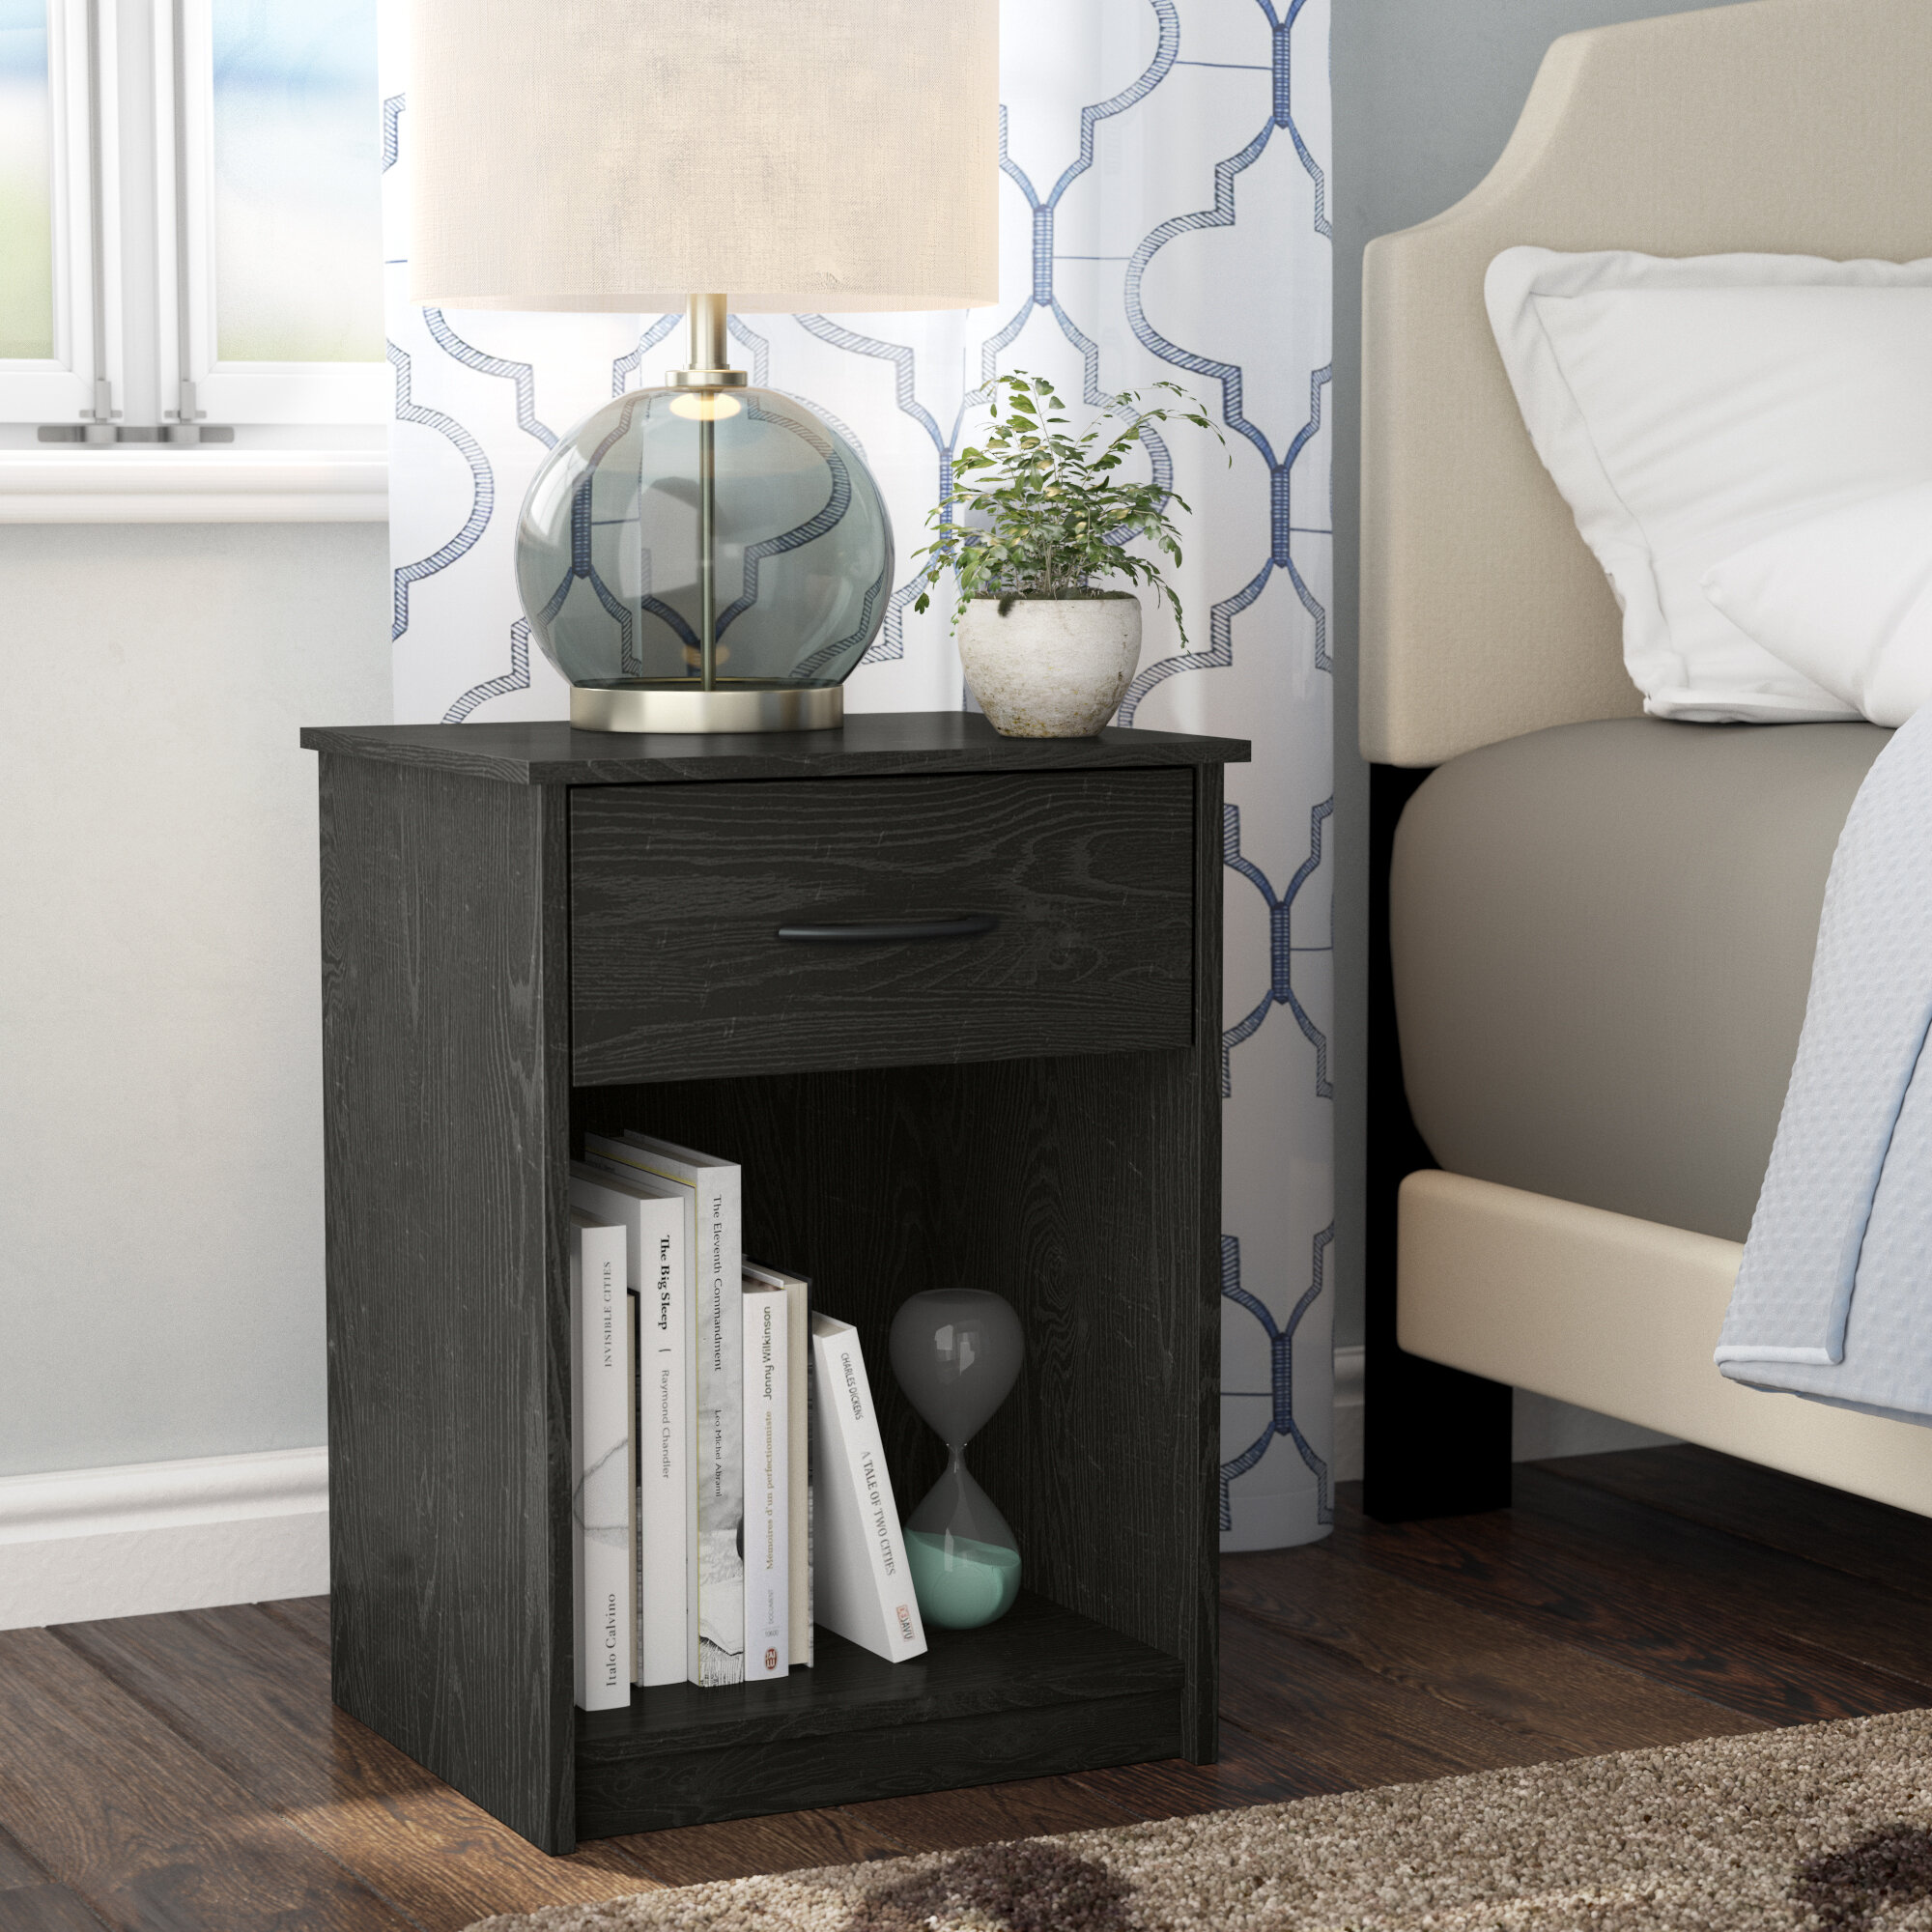 Patio Coffee Bistro Table Vintage Industrial Farmhouse Night Stand Bedroom Household Pub Table Black End Tables for Living Room,Lanyun Indoor Outdoor Small Metal Square Sidetable